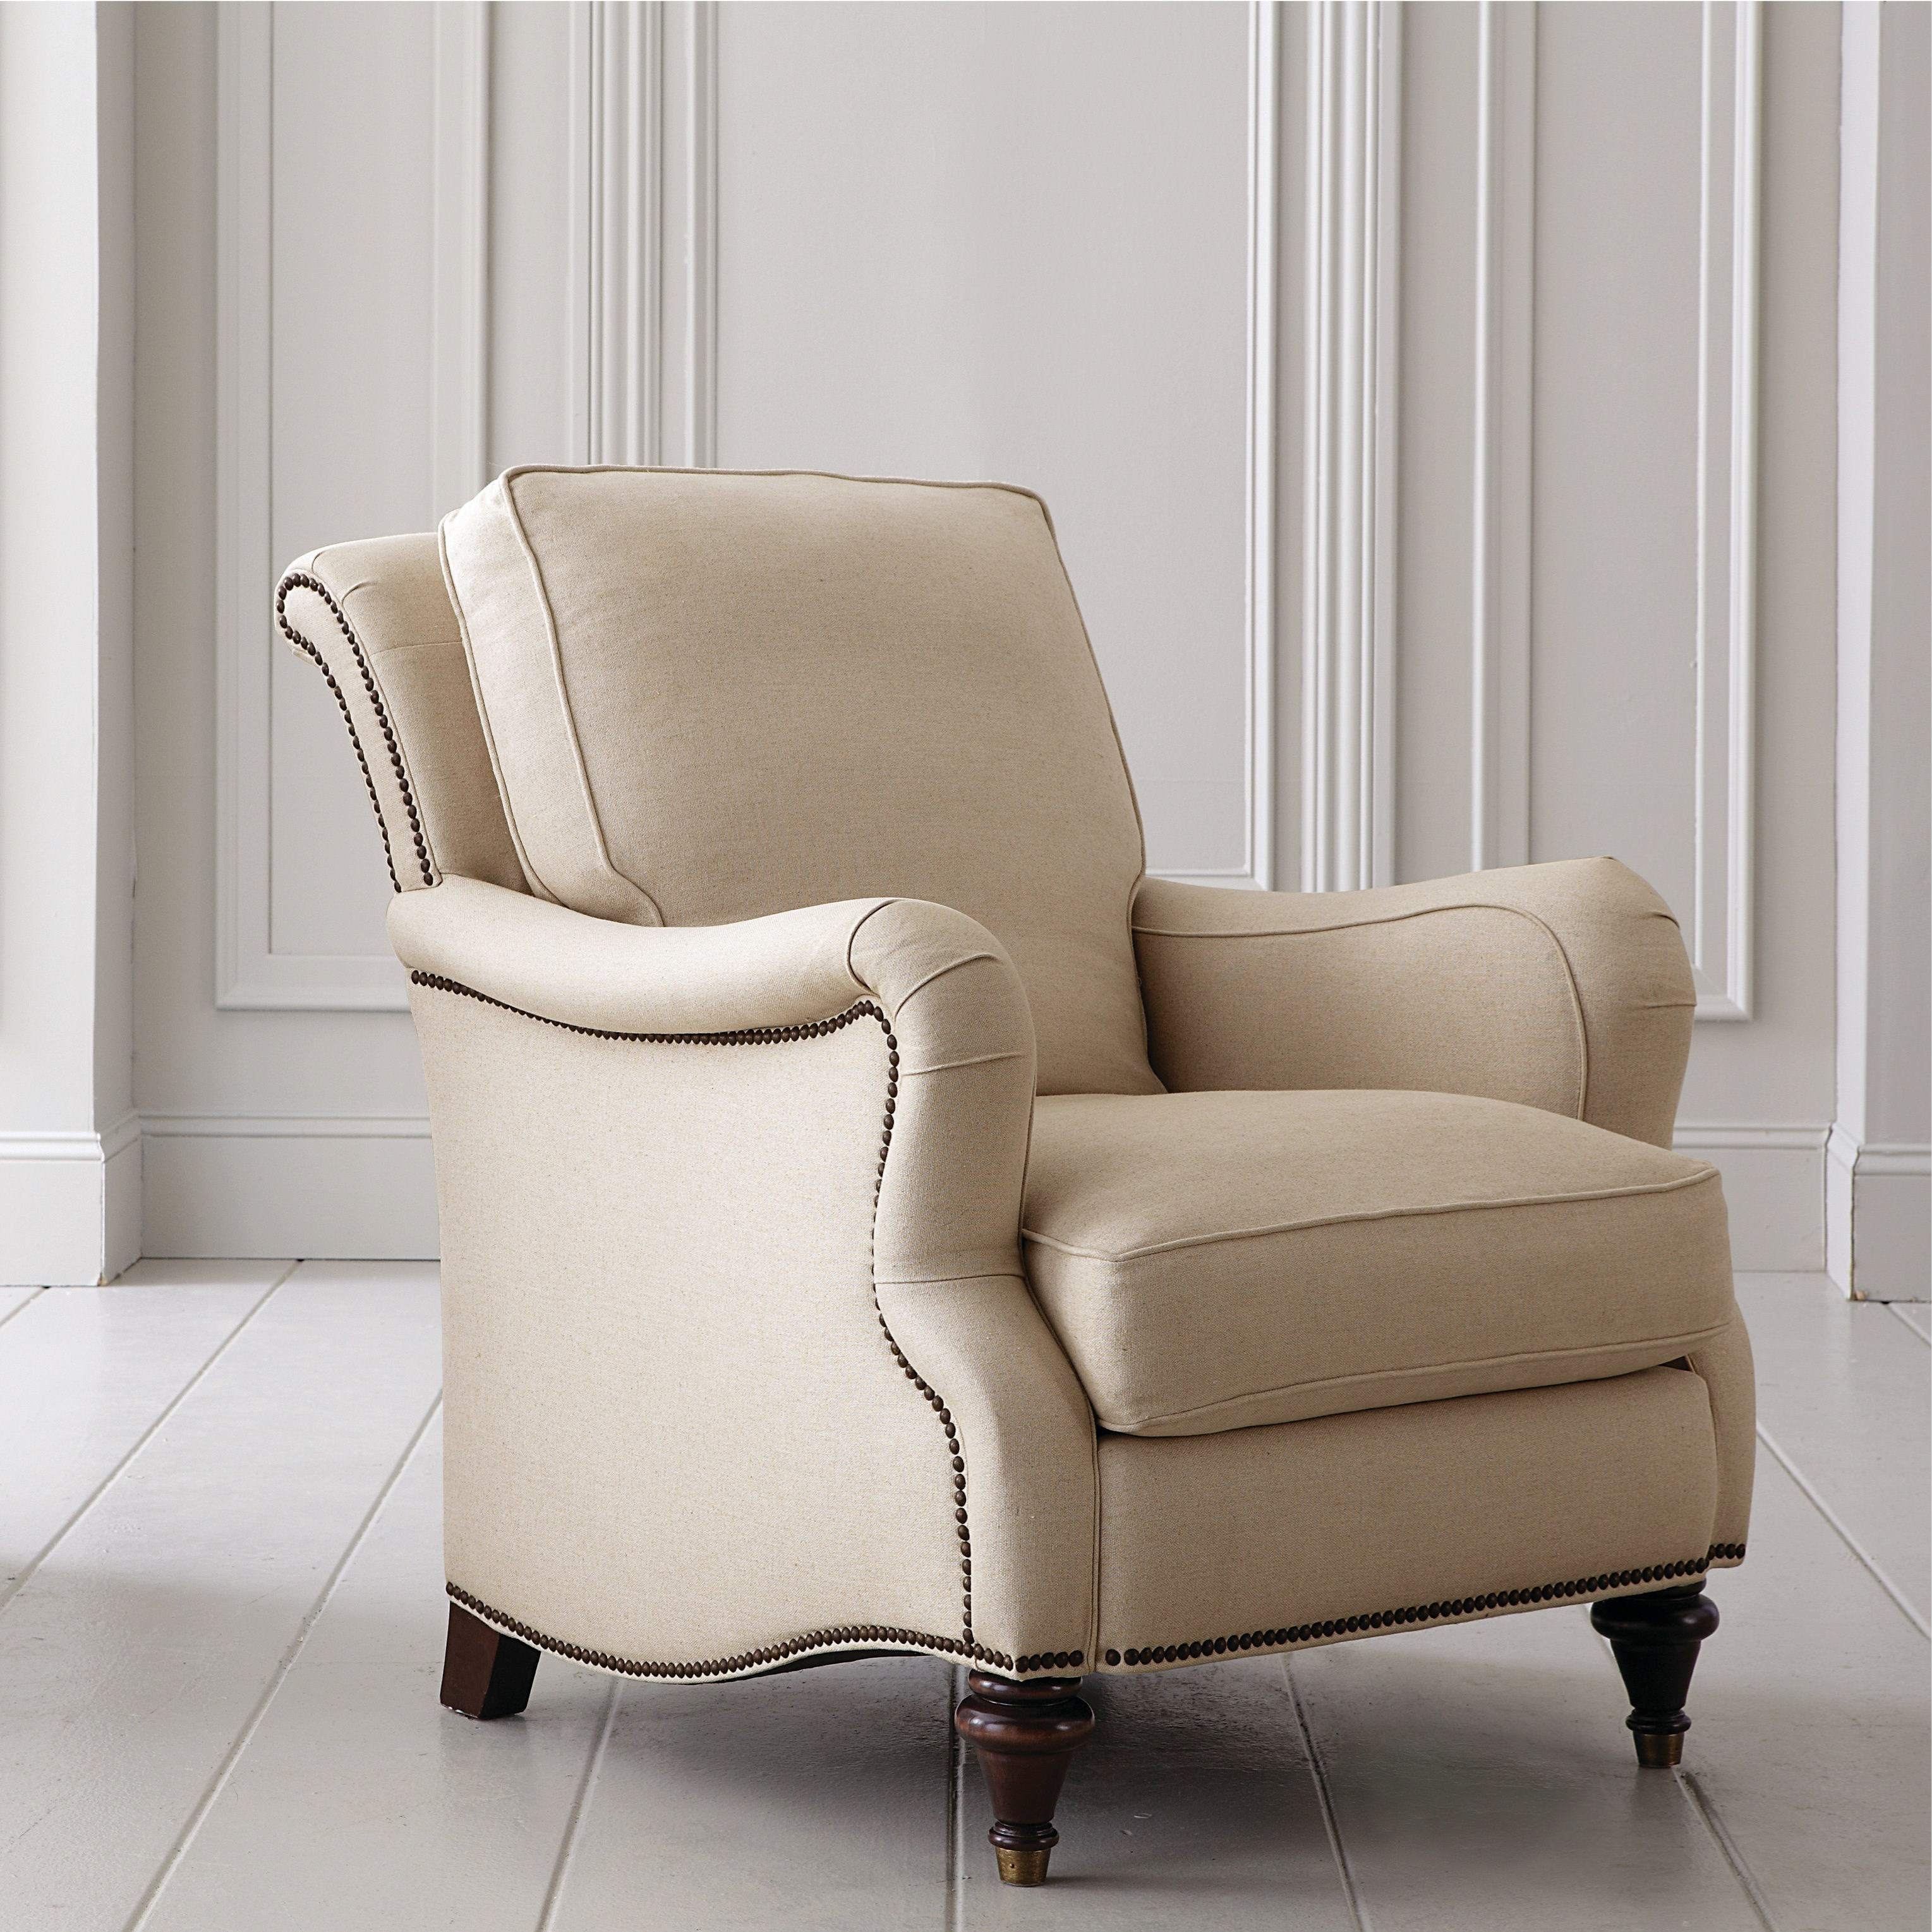 Oxford Accent Chair by Bassett at Fashion Furniture